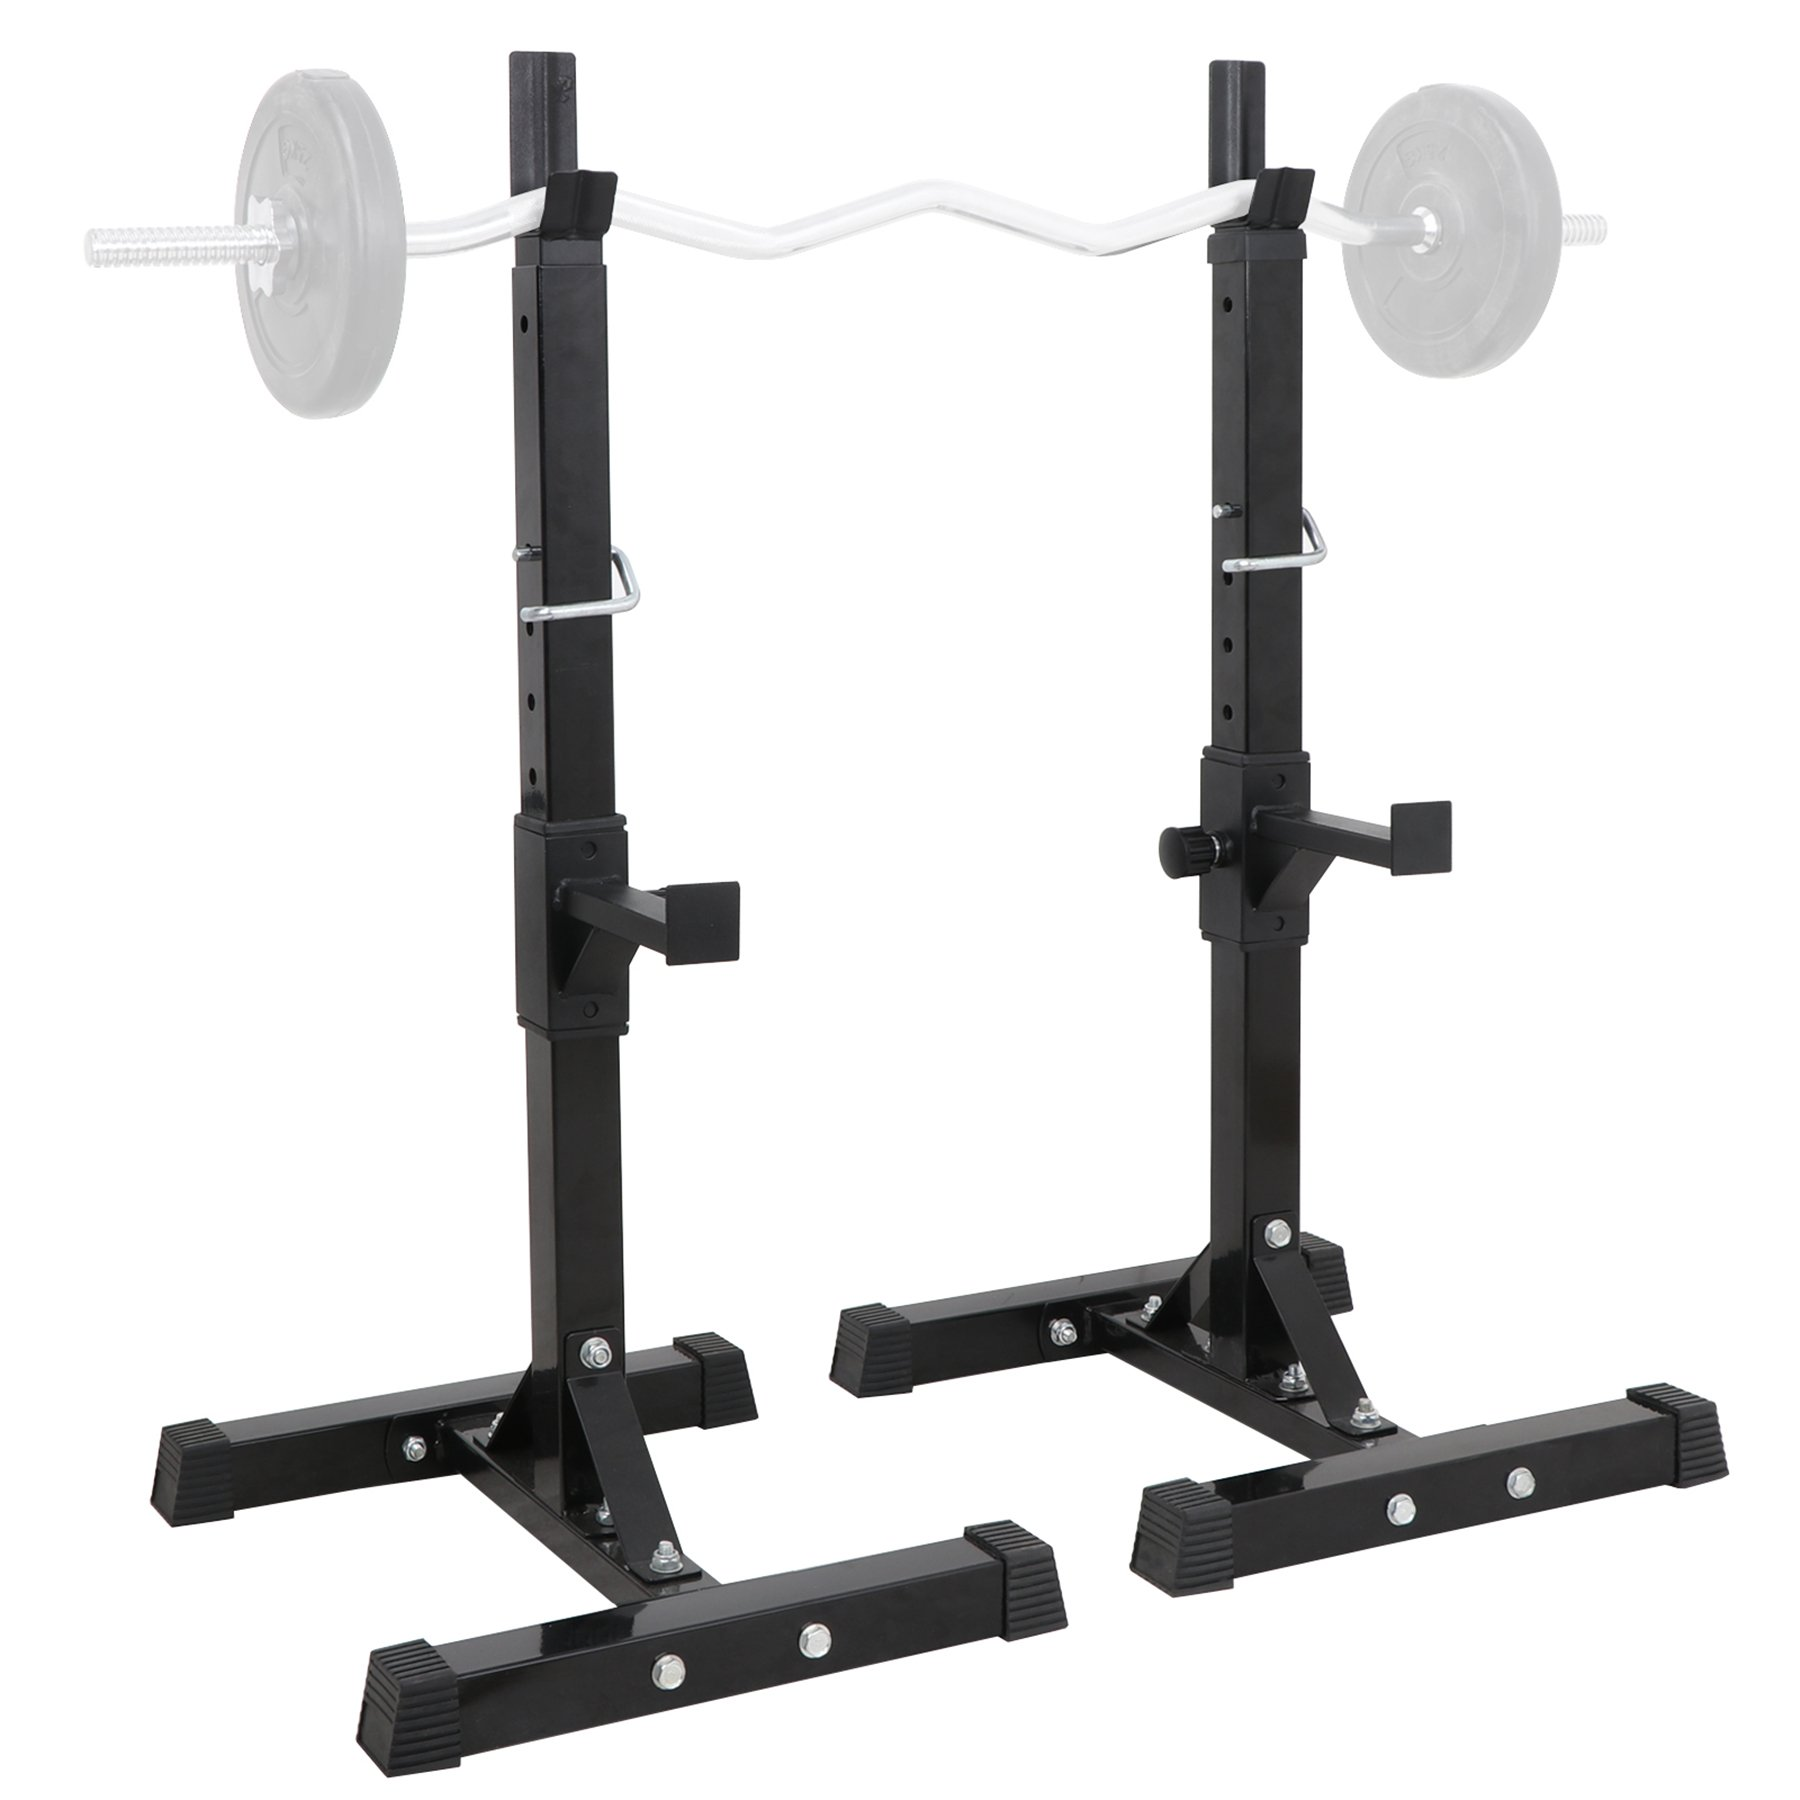 F2C Pair of Adjustable 41''-66'' Sturdy Steel Squat Rack Barbell Free Bench Press Stand Gym/Home Gym Portable Dumbbell Racks Stand Max 550lbs